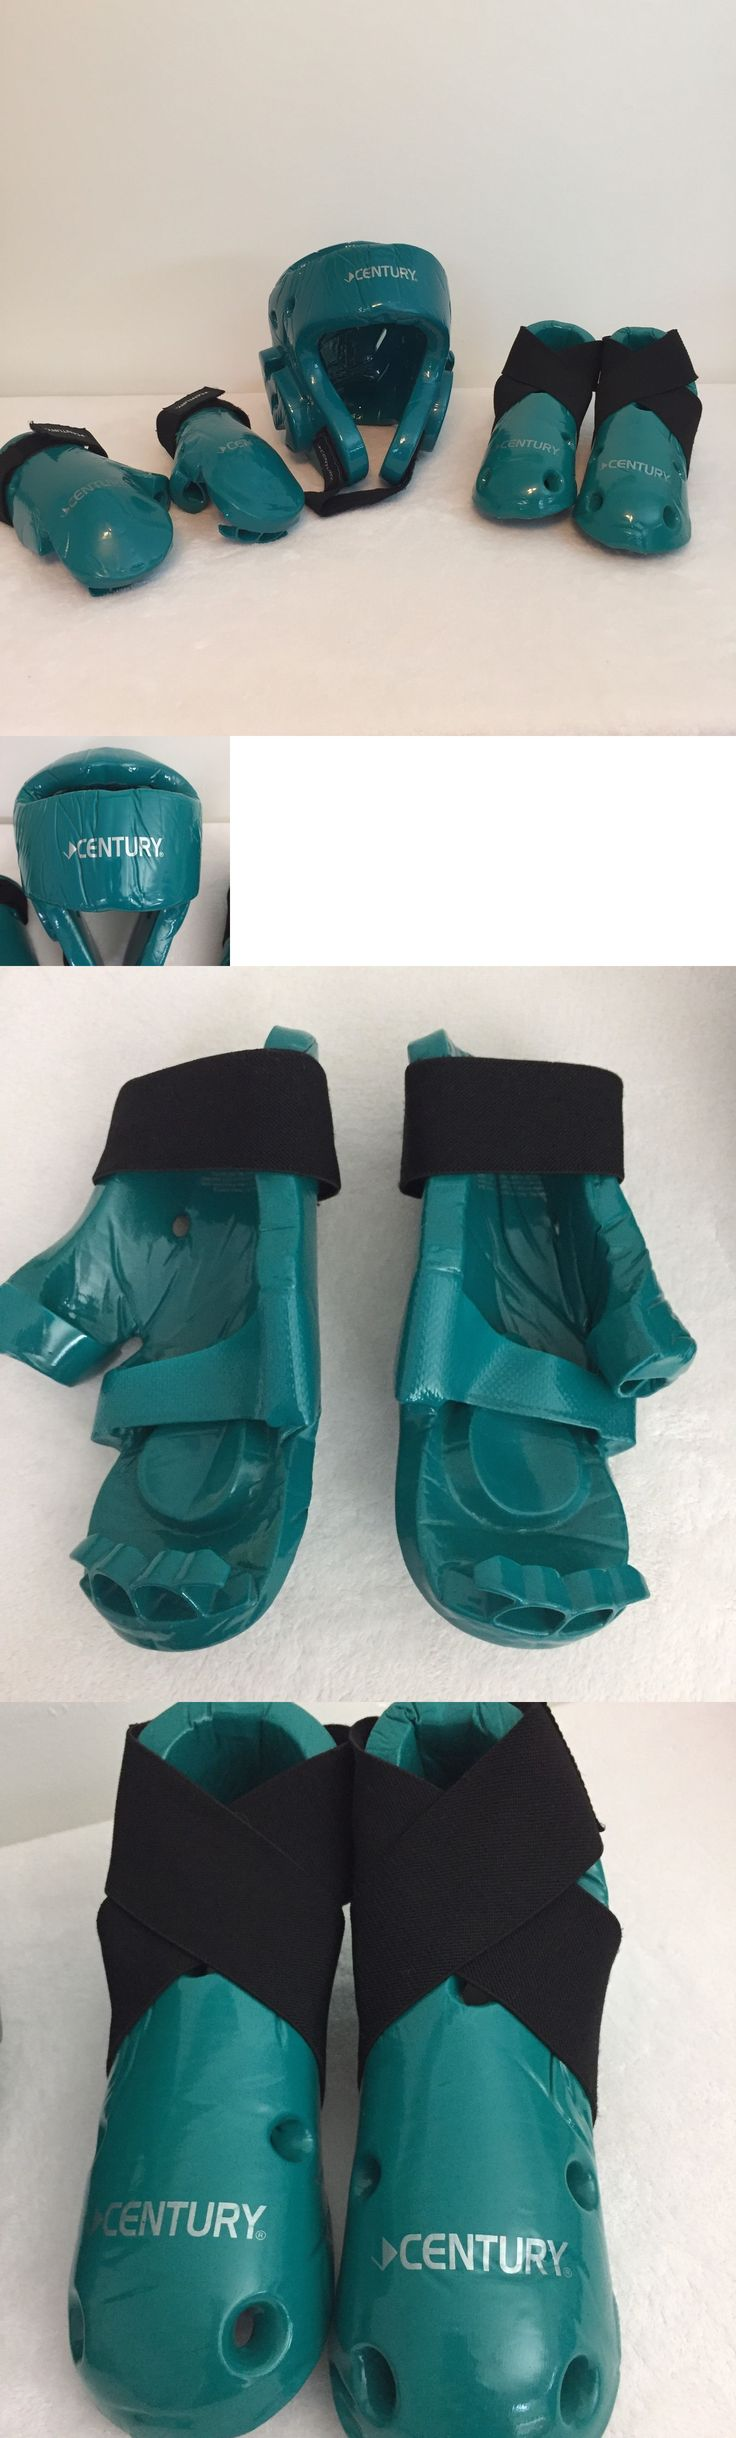 Other Combat Sport Protection 179783: Century Martial Arts Taekwondo Sparring Gear Teal 5 Piece Set Size 3 4 Adult S -> BUY IT NOW ONLY: $30.99 on eBay!